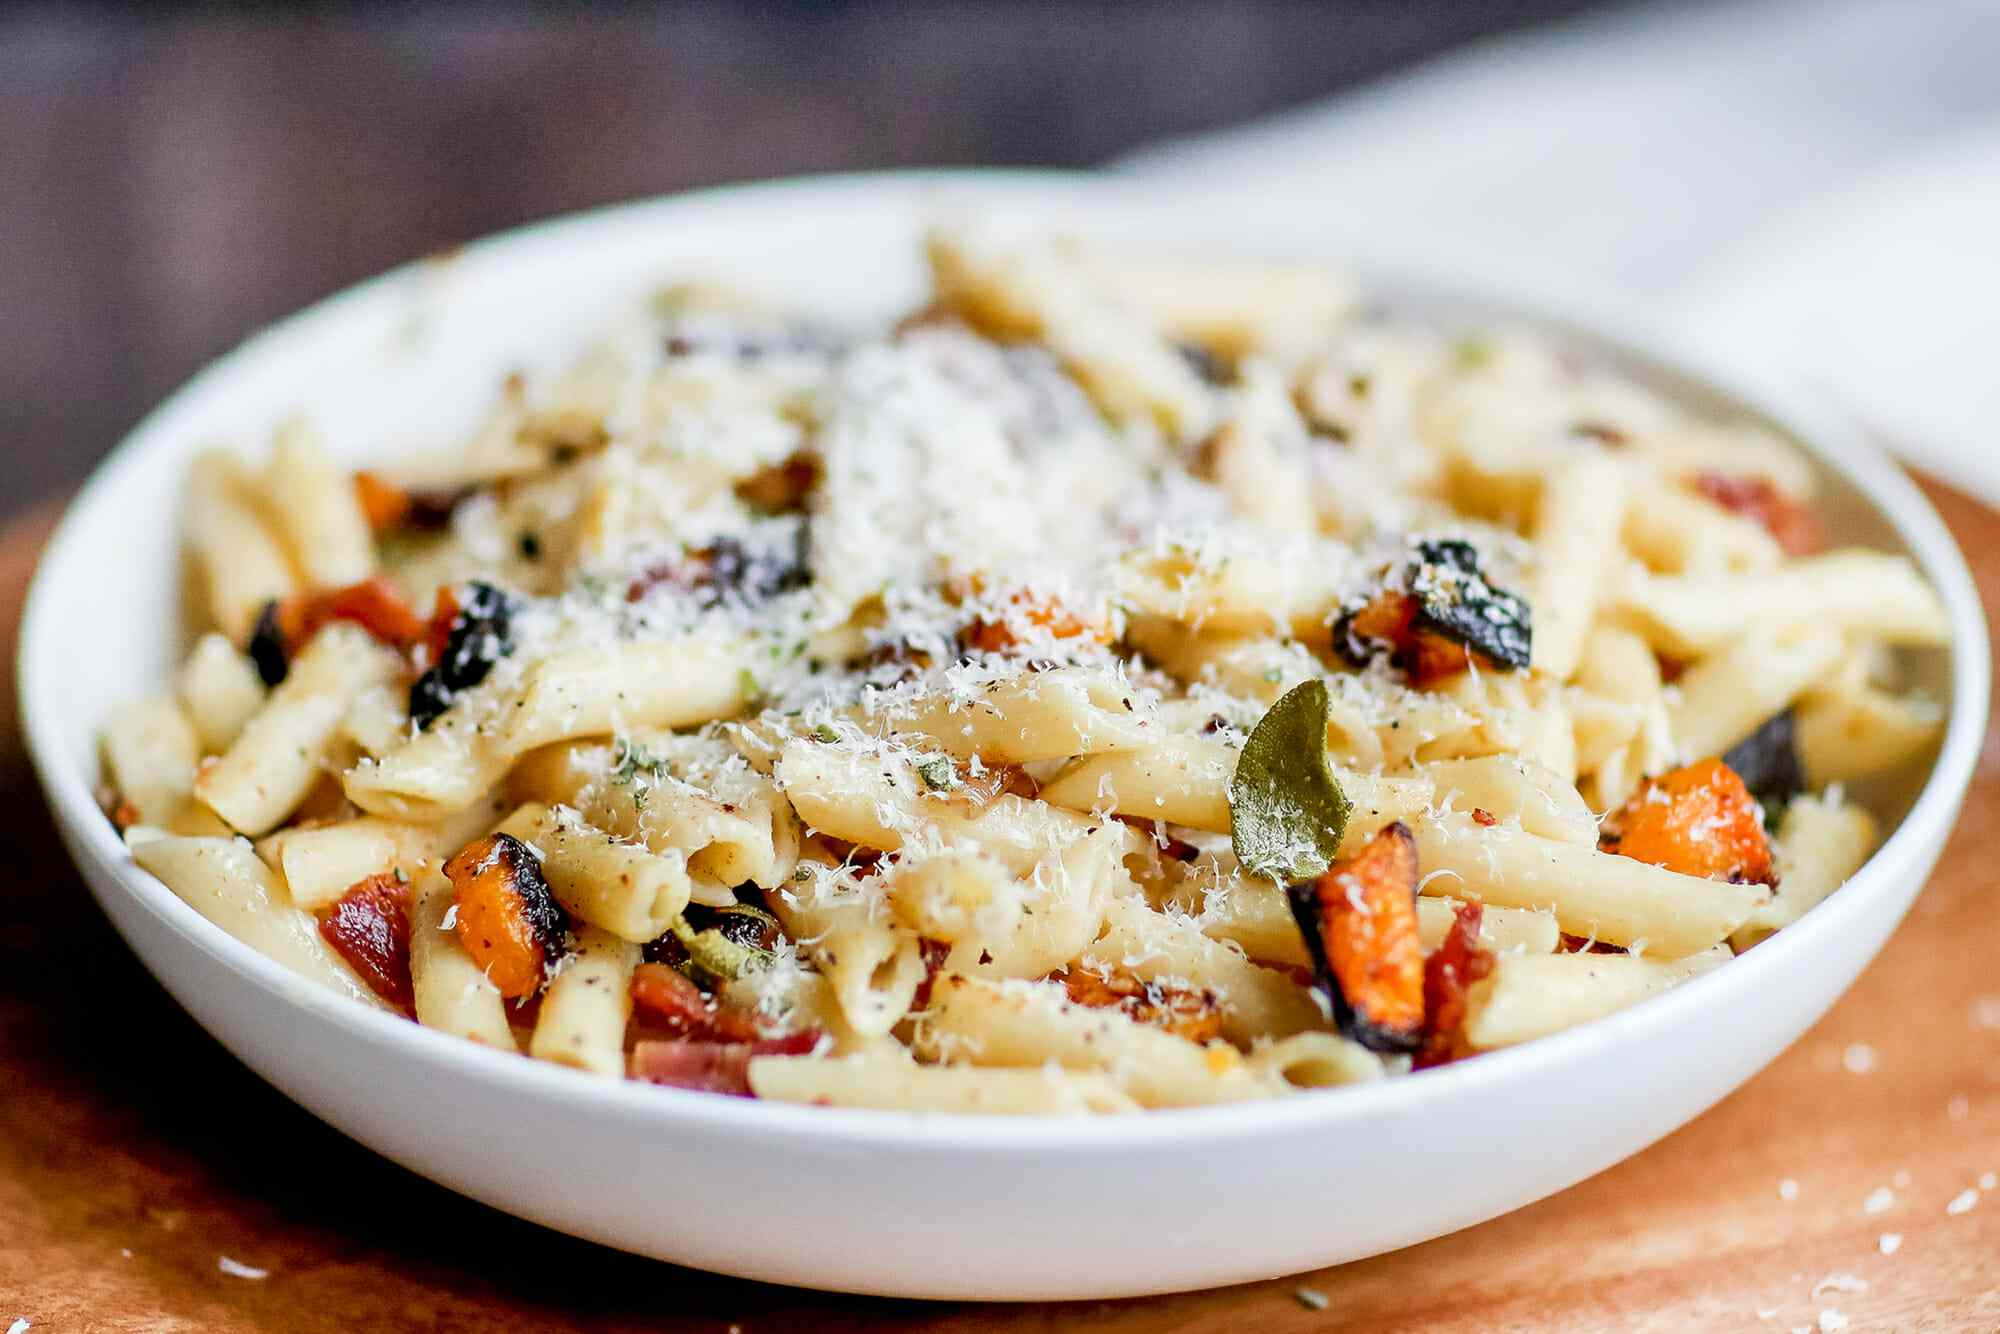 Pasta with Butternut Squash, Bacon, and Brown Butter